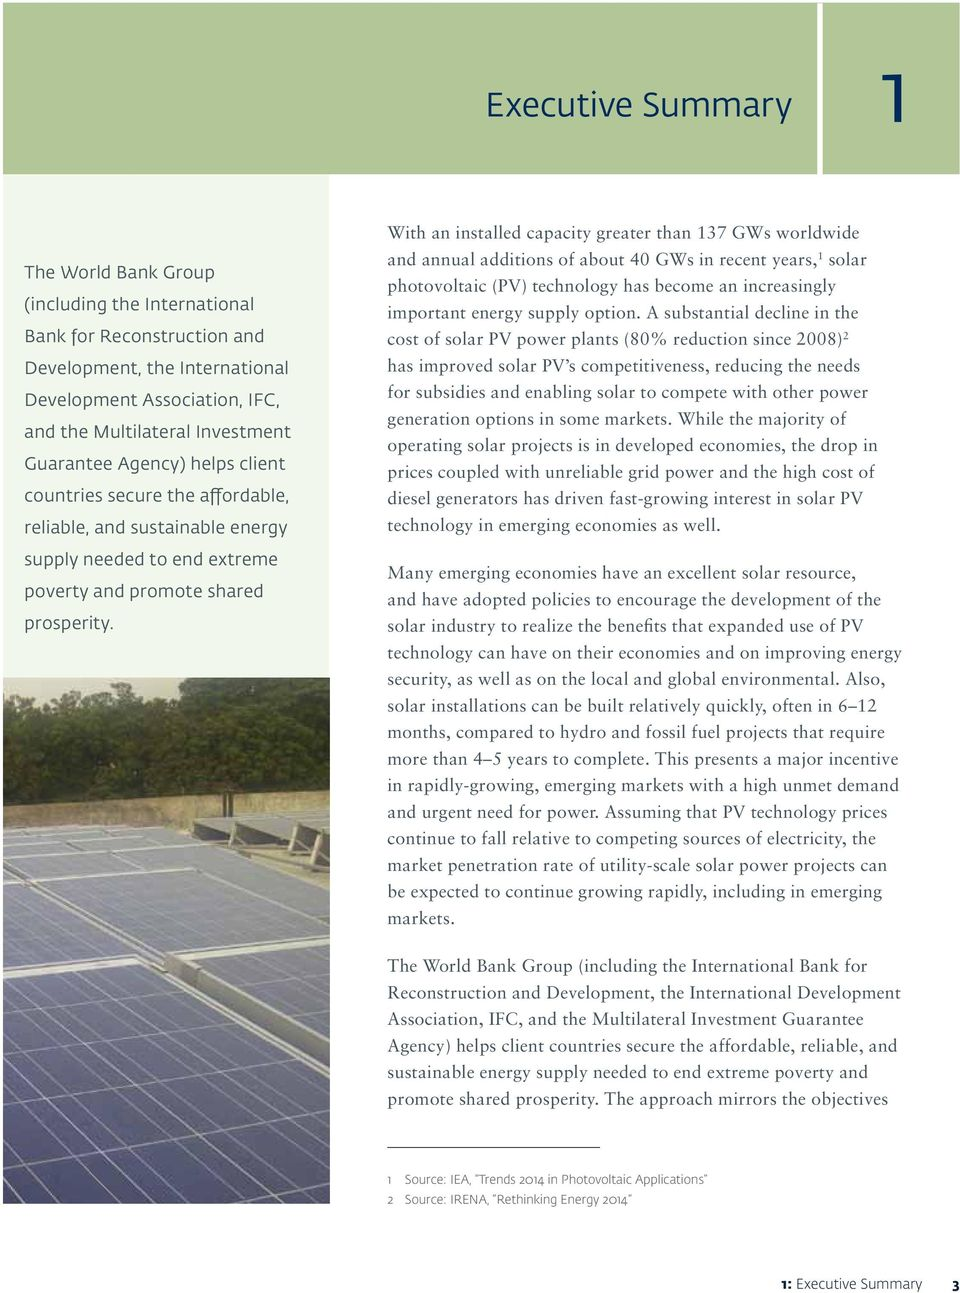 Utility Scale Solar Photovoltaic Power Plants A Project Developer S Questions About Renewable Energy Photo Voltaic Roi Tco With An Installed Capacity Greater Than 137 Gws Worldwide And Annual Additions Of 40 12 The Sustainable